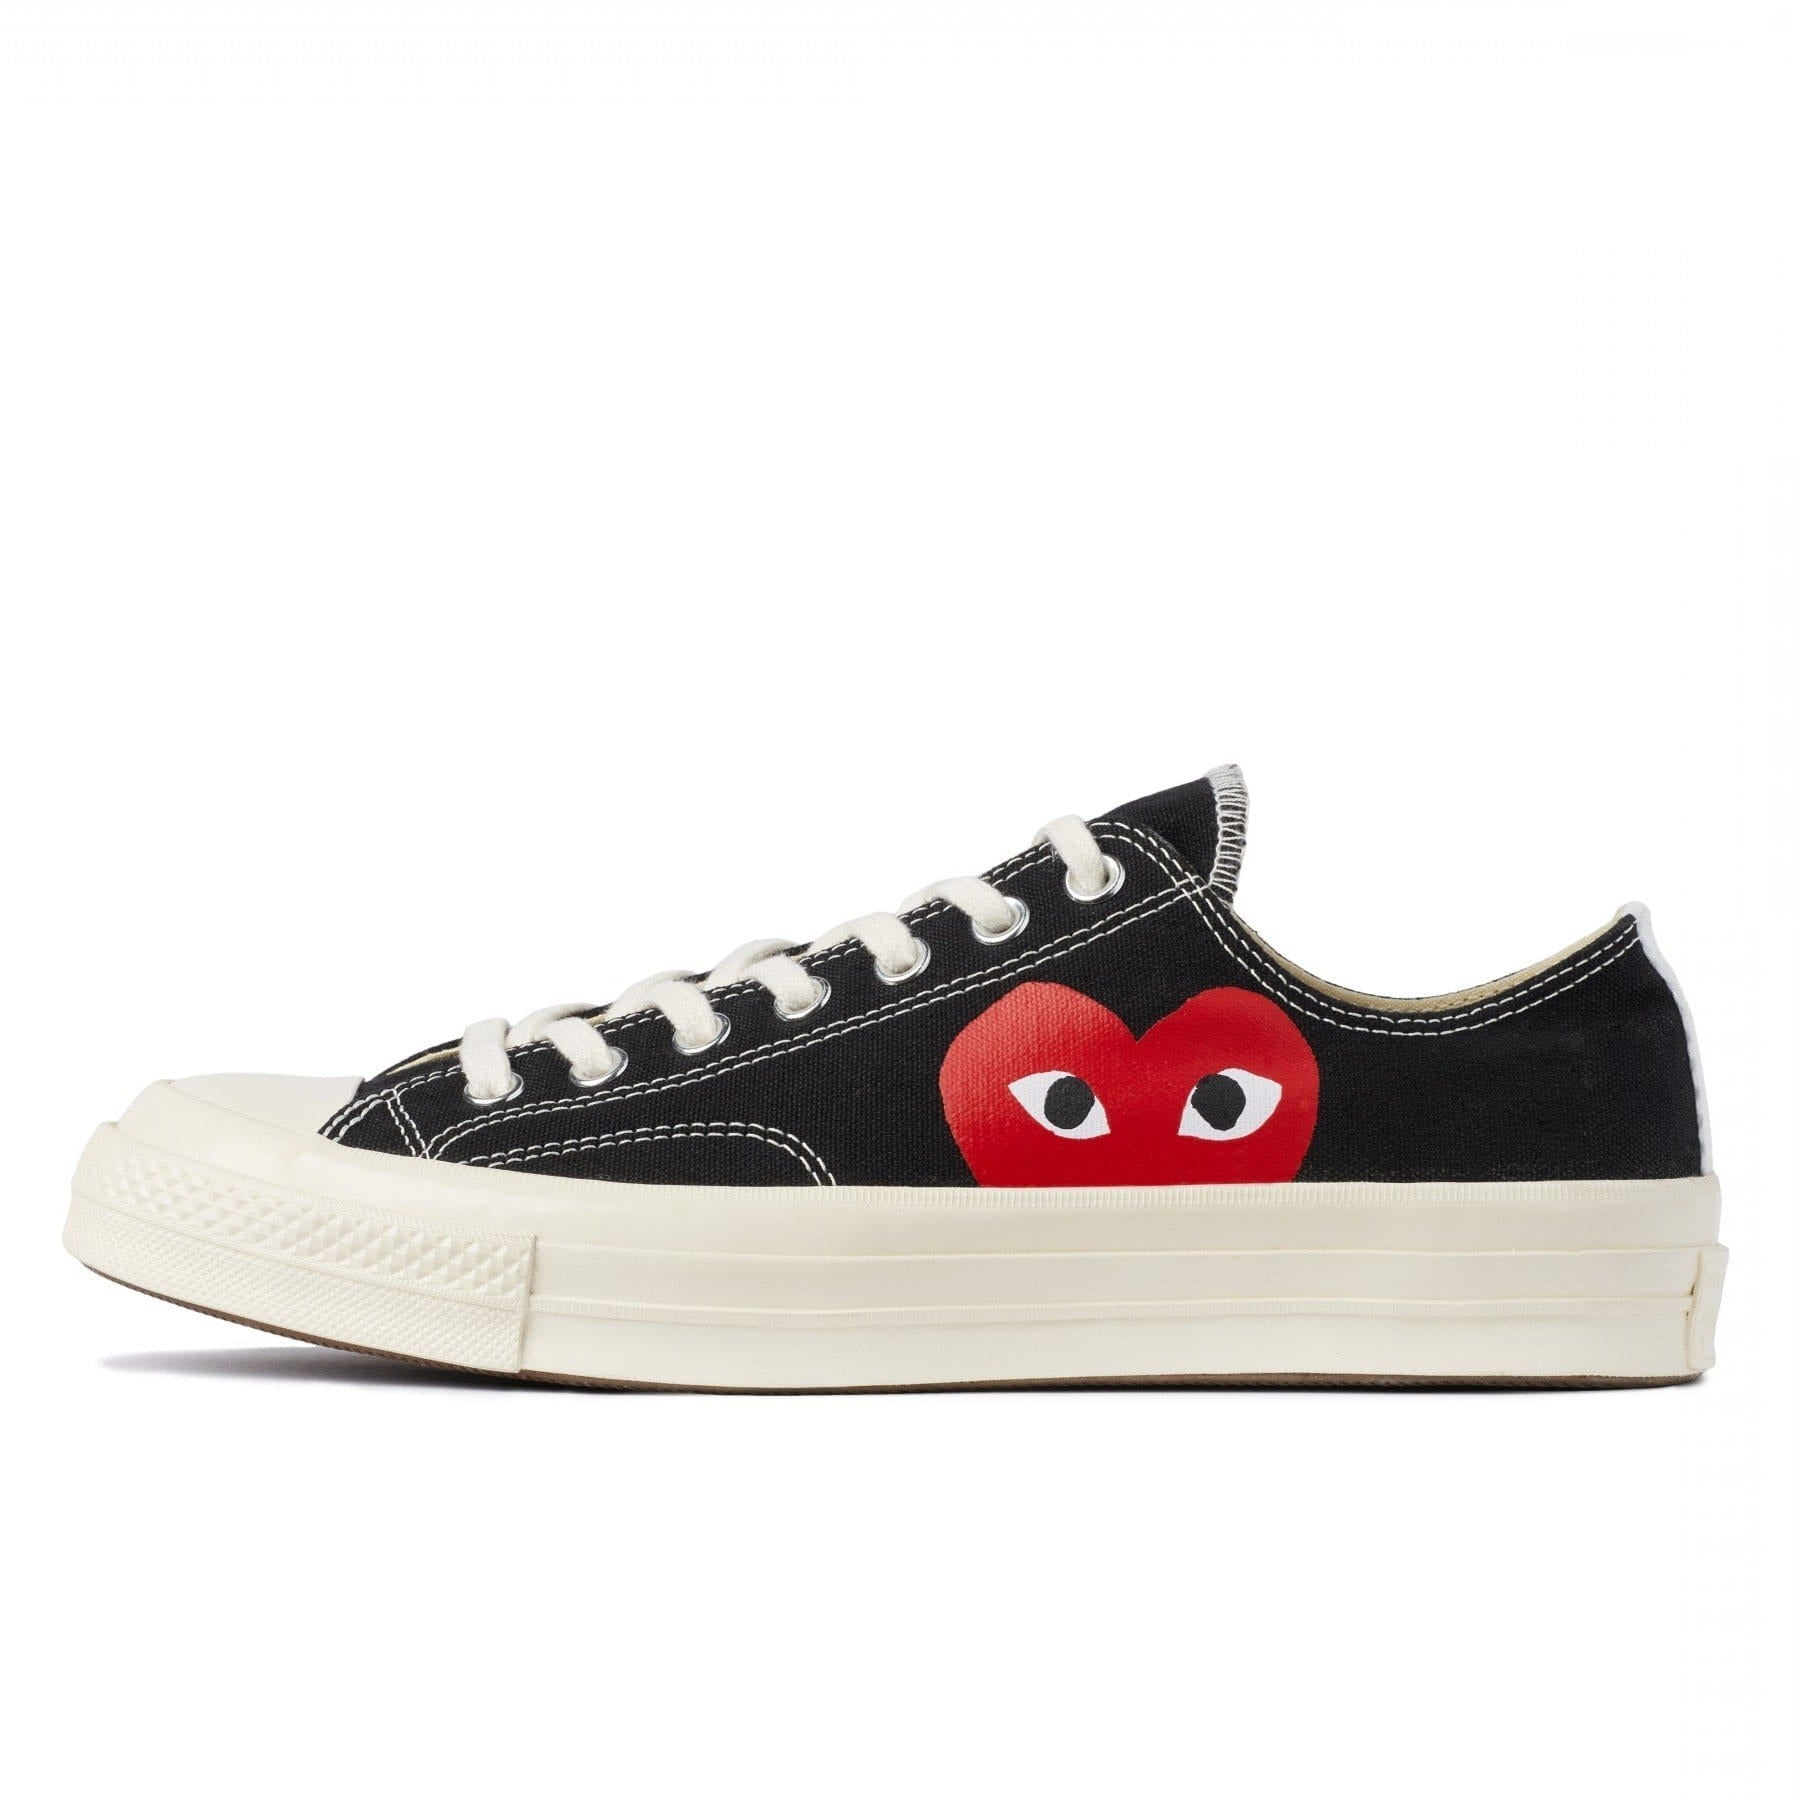 CDG PLAY x Converse Chuck Taylor 1970s Low''BLACK''